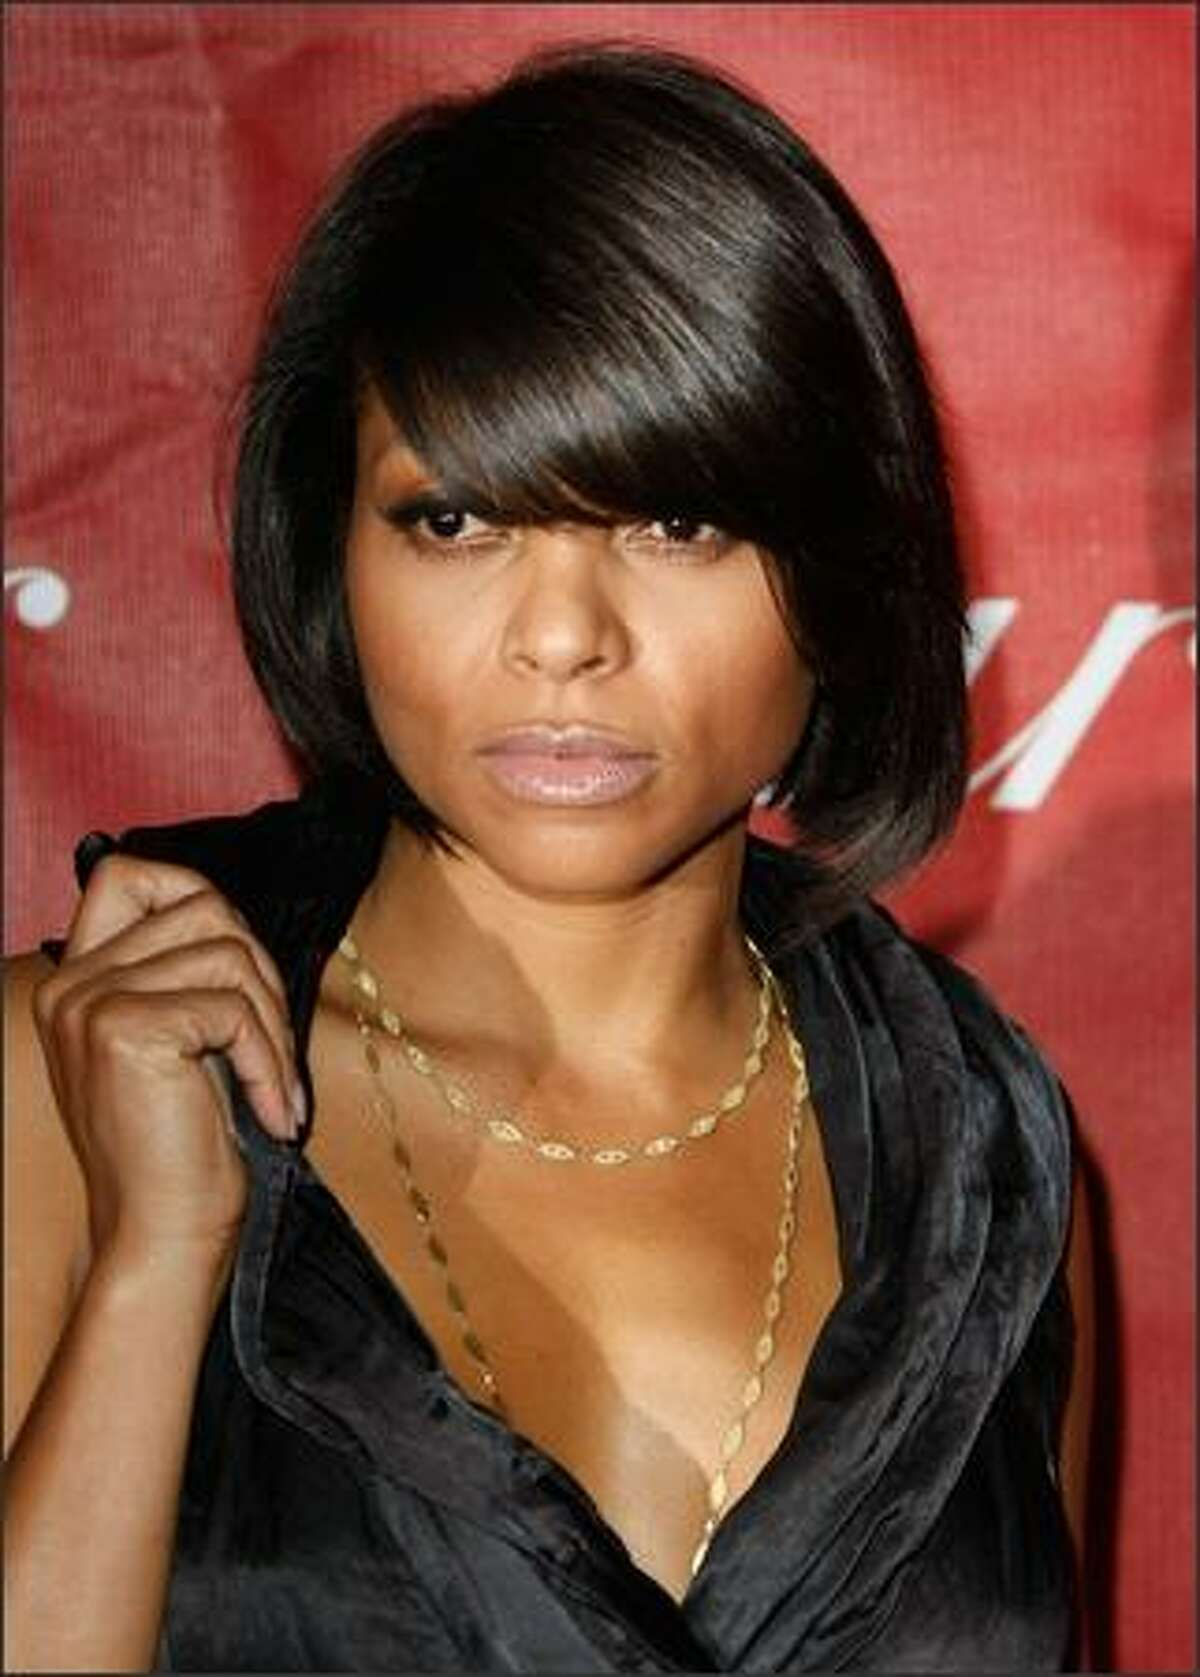 Actress Taraji P. Henson arrives. The veteran actress, who had a role in